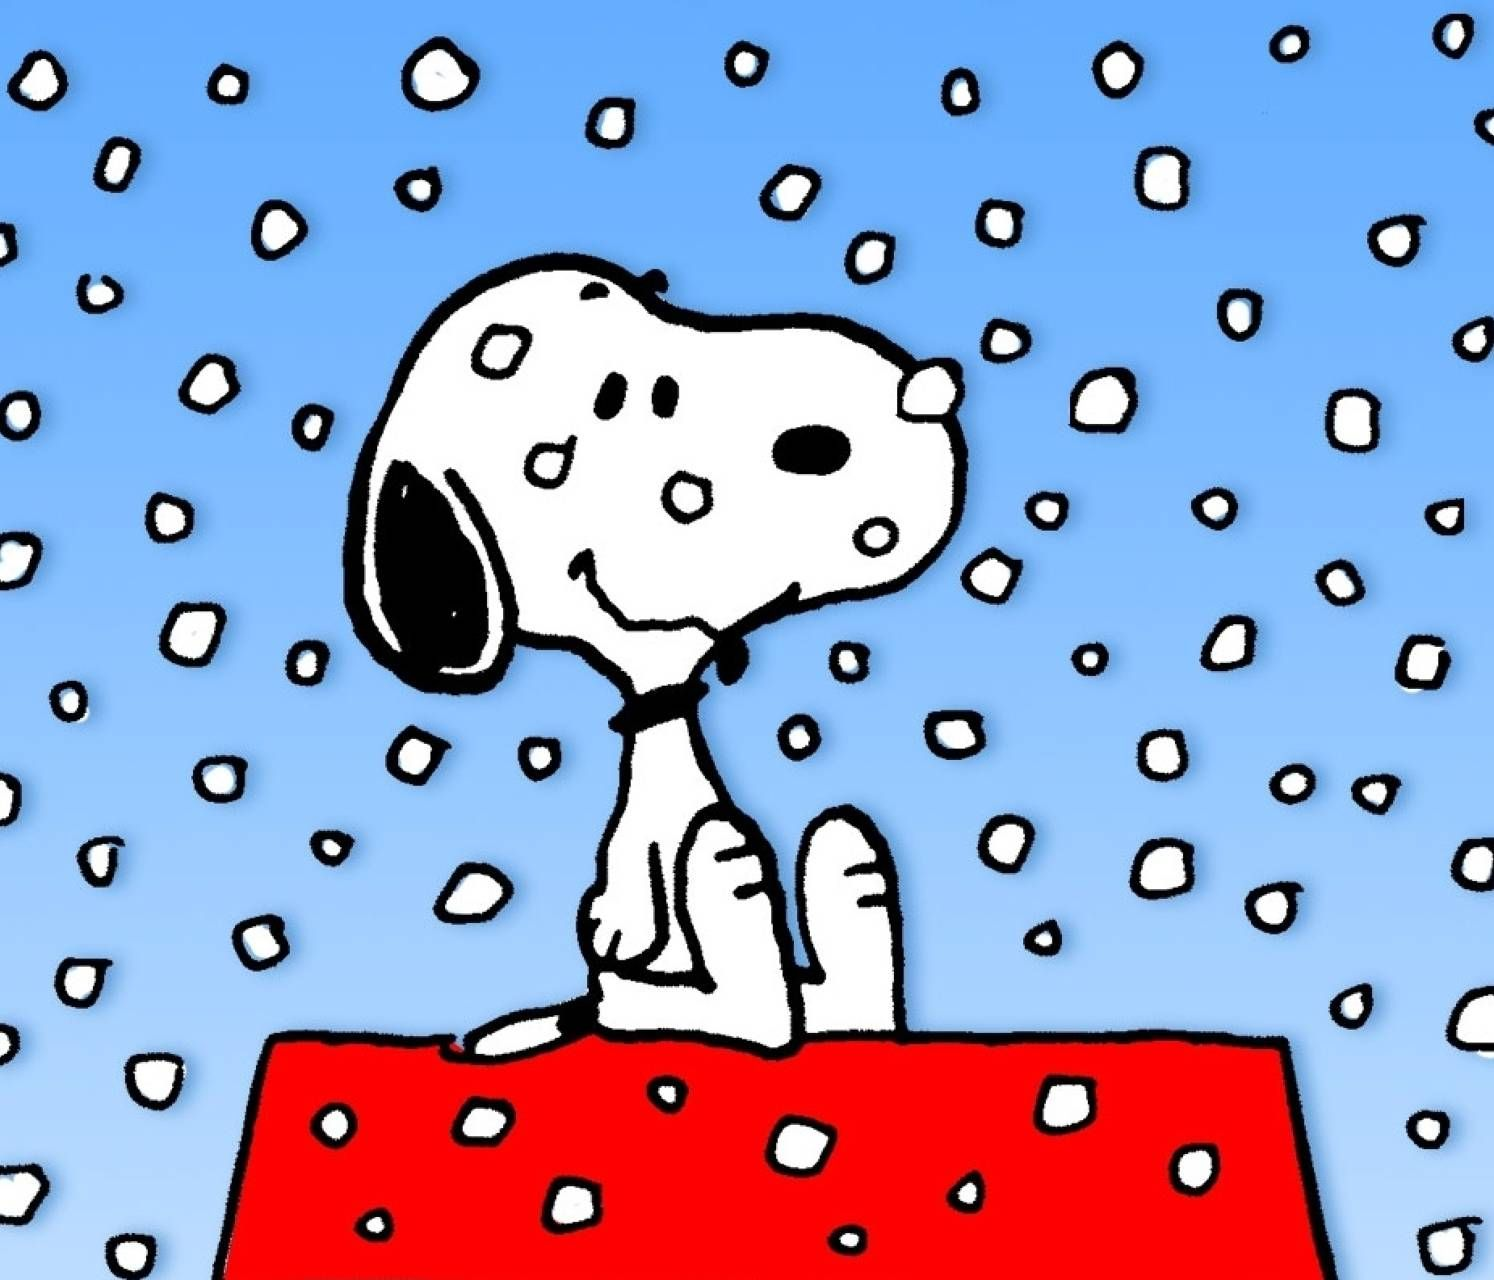 Download Snoopy Snow Wallpaper By Lovey 74 Free On Zedge Now